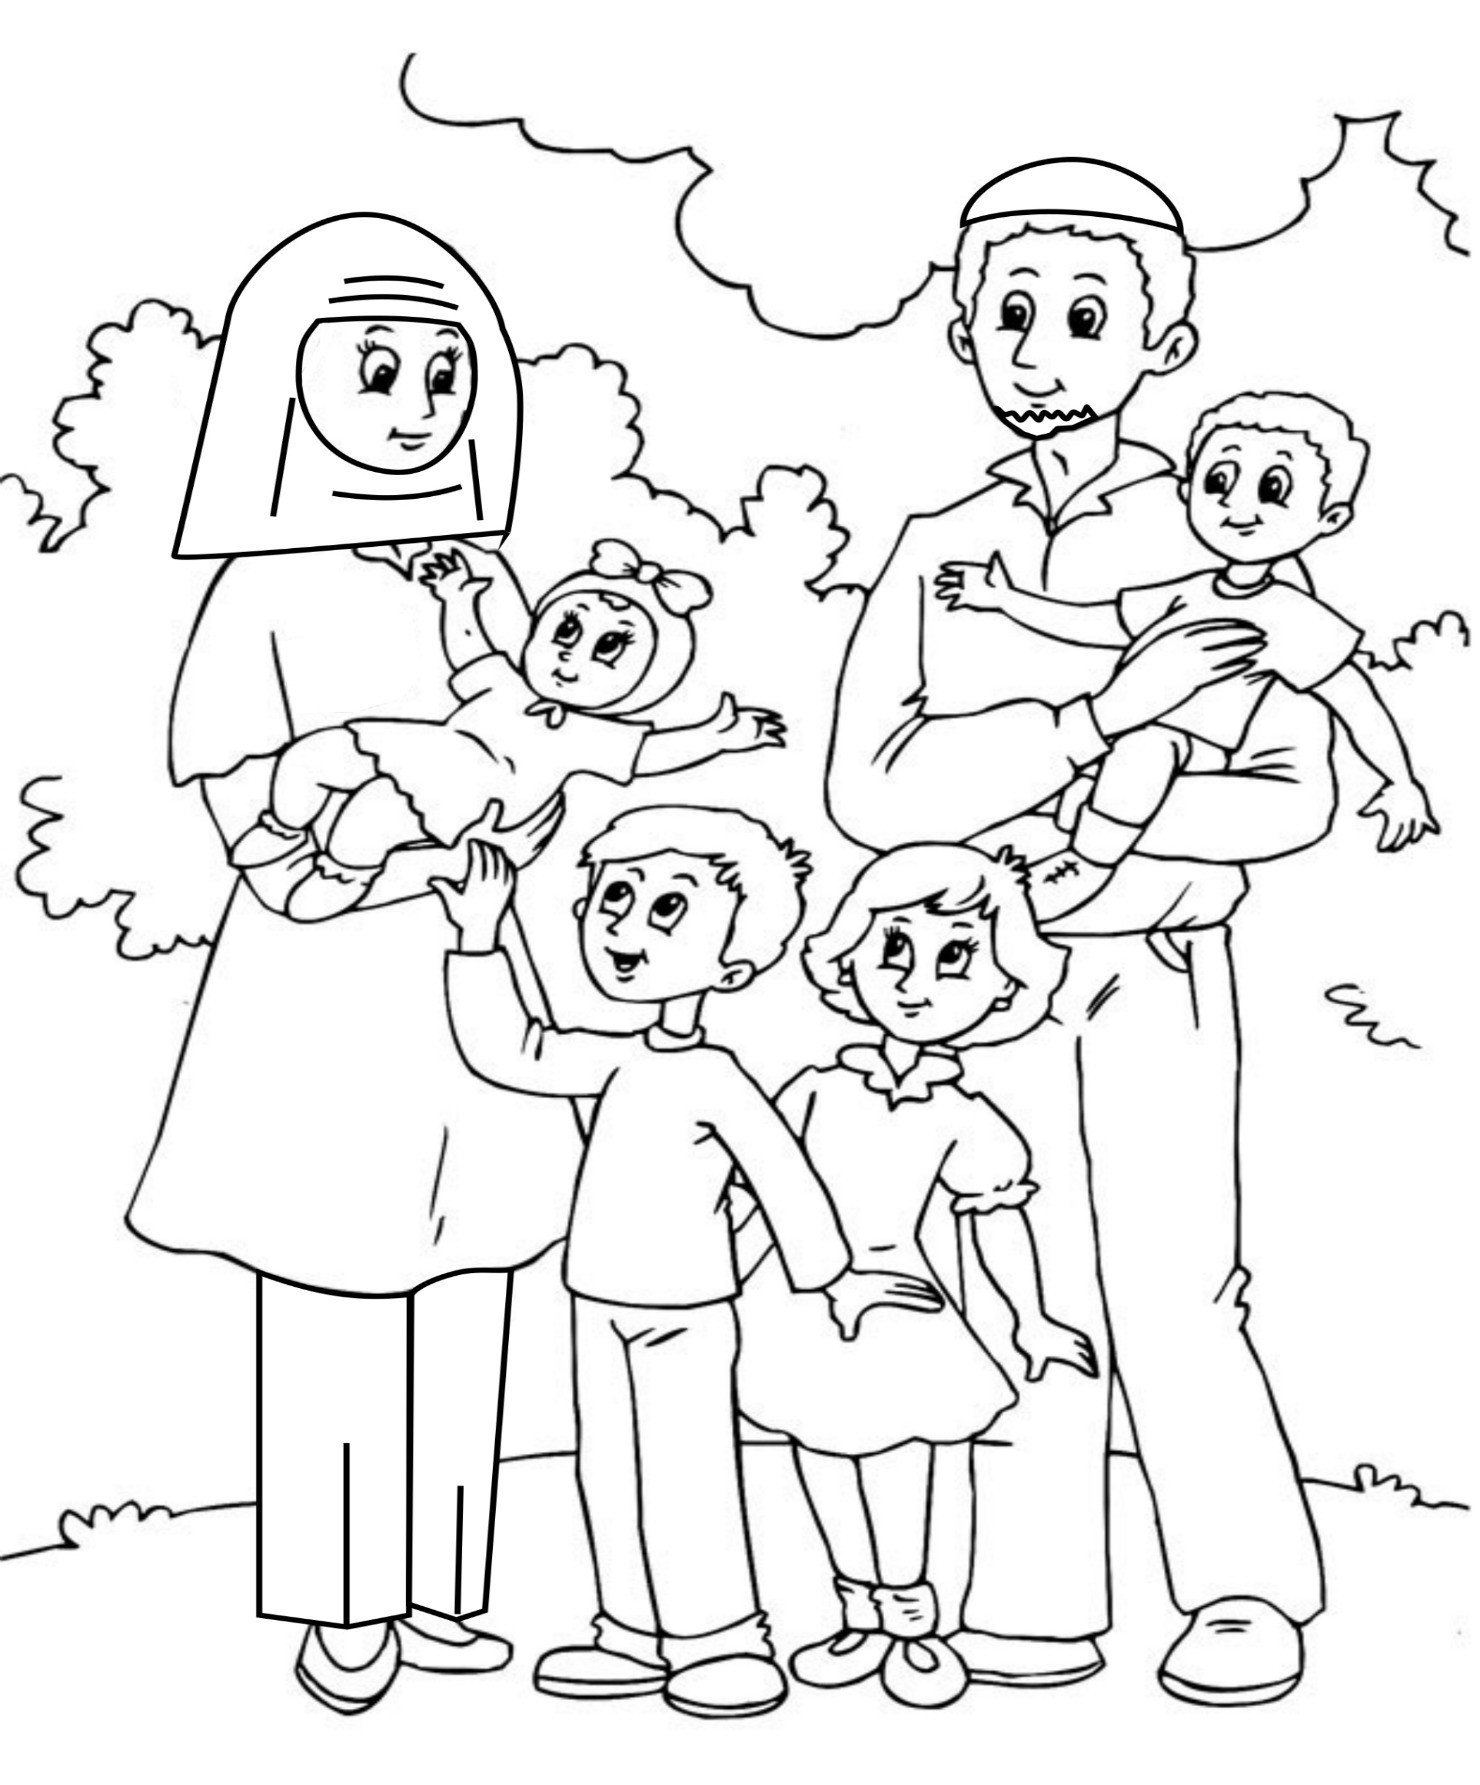 Best ideas about Coloring Pages For Girls From I Love My Family . Save or Pin Family Coloring Pages Now.